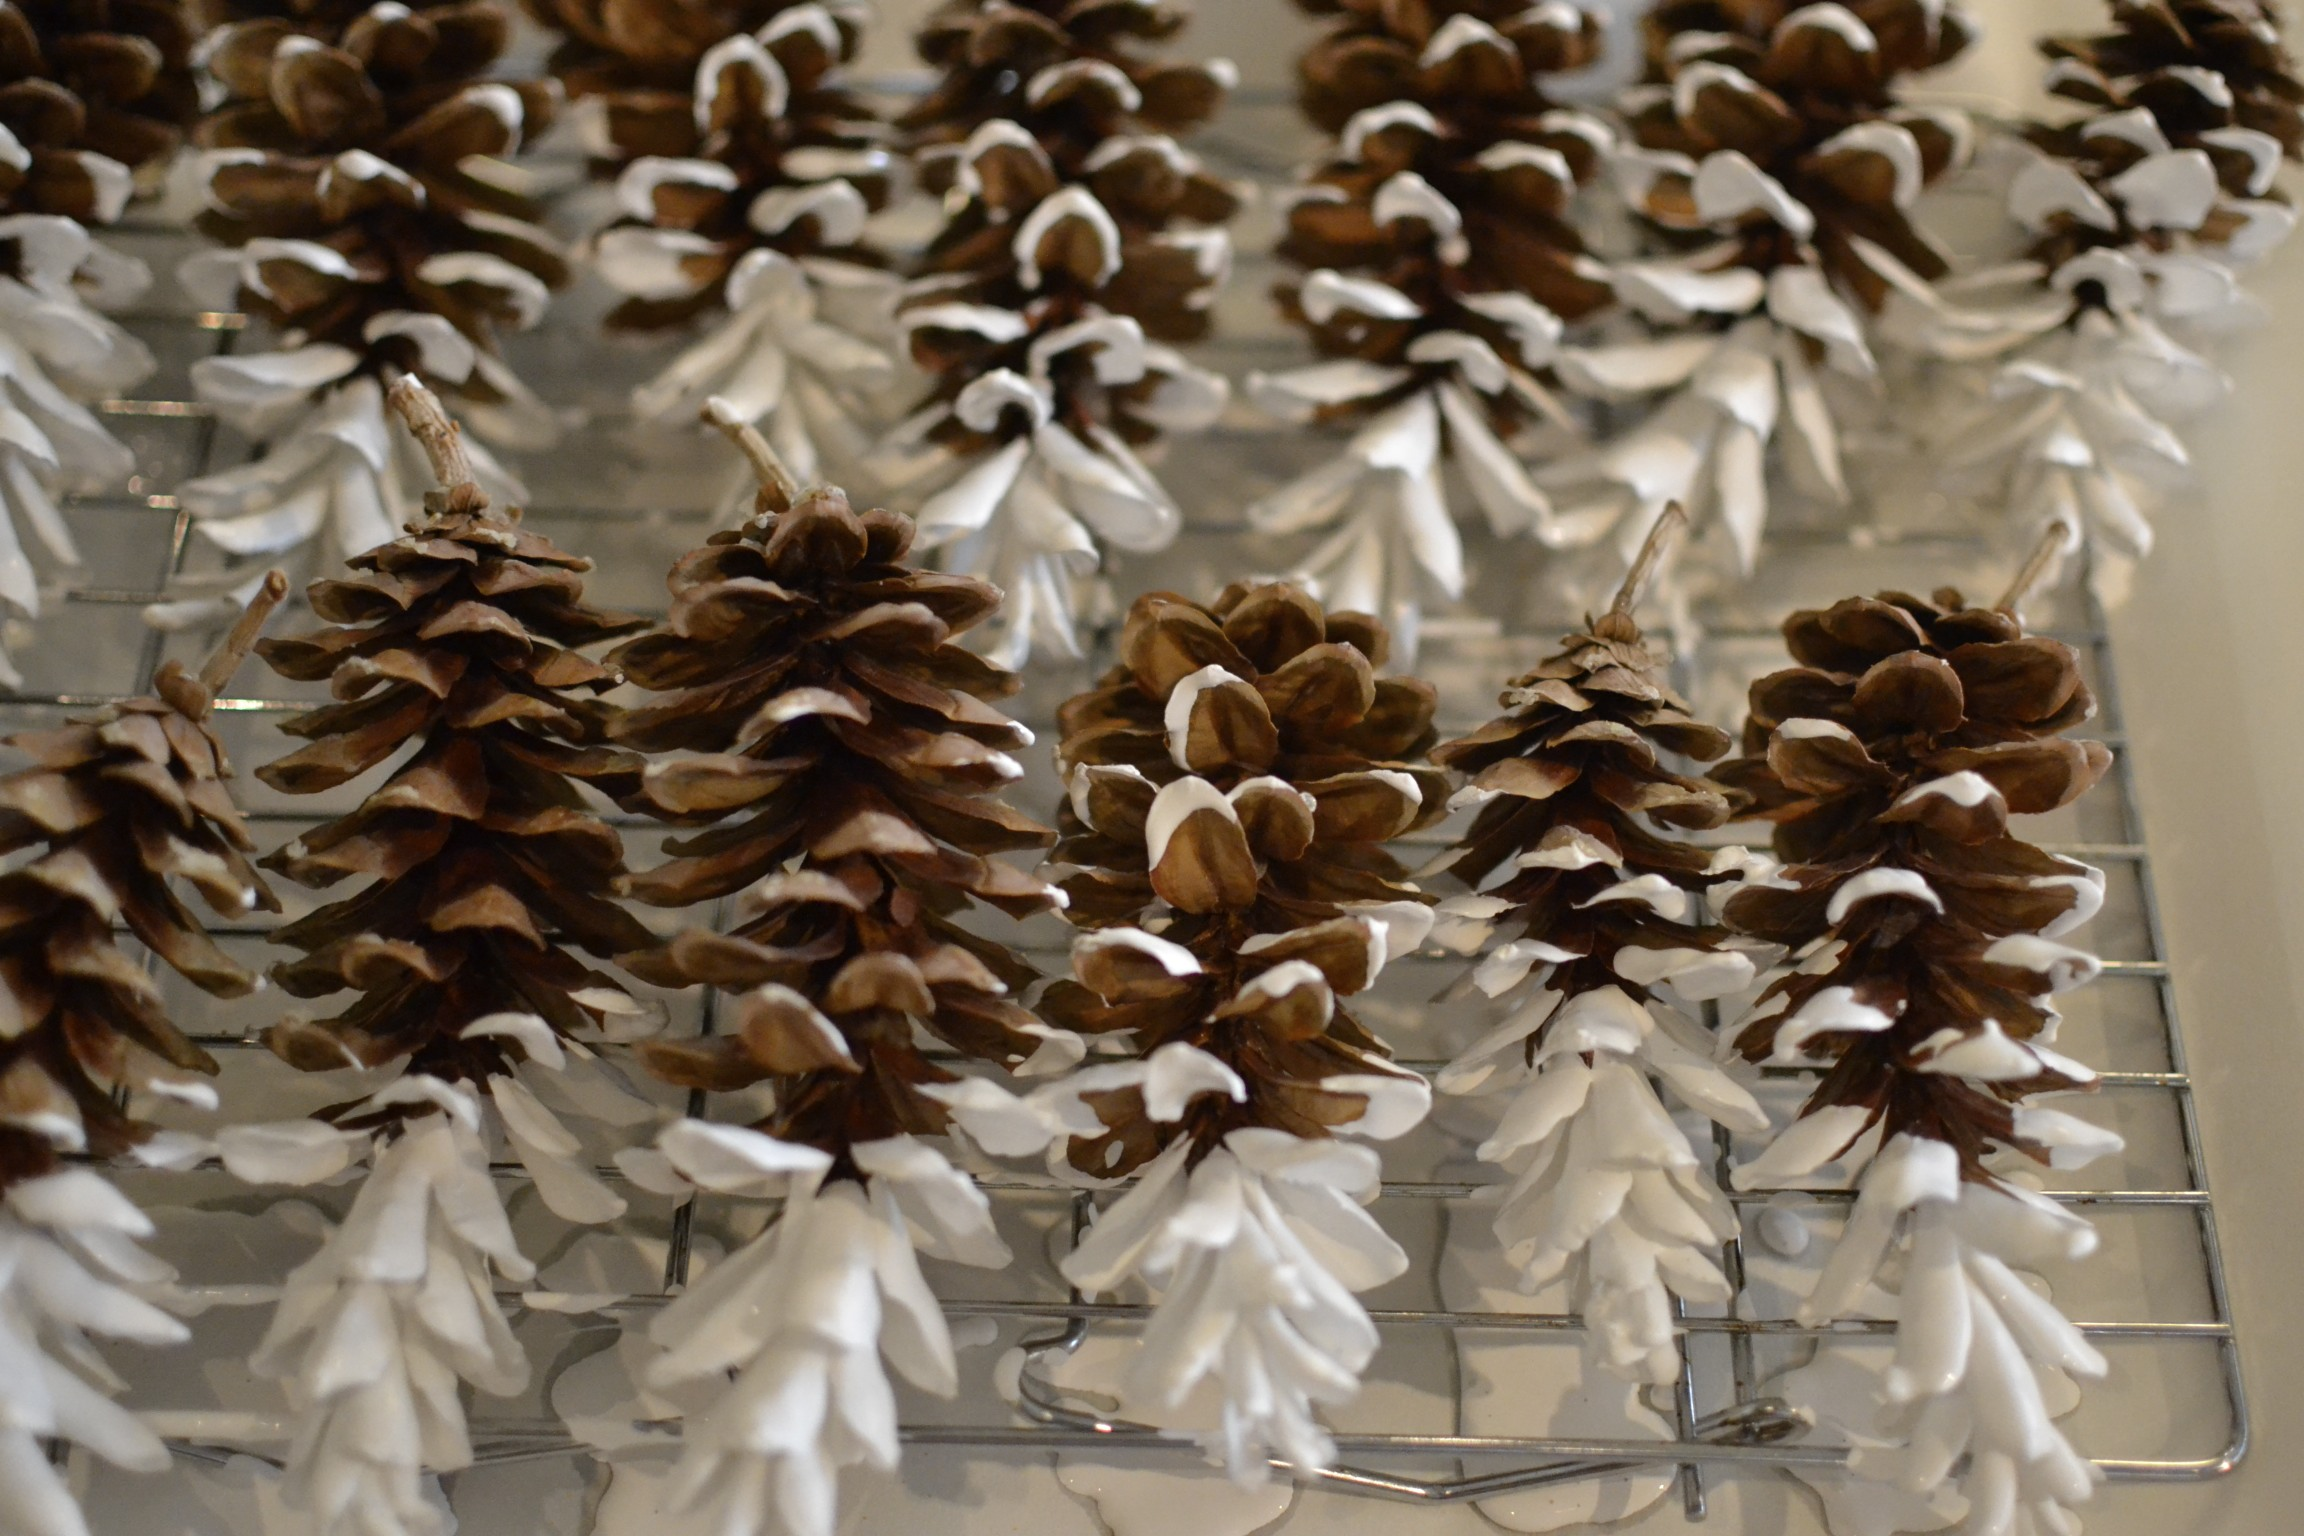 lay each pine cone on your cookie rack to partially dry. you will want the paint to become just tacky to the touch. if you sprinkle the glitter on the pine cones while still really wet, the majority of glitter will drip off with the excess paint.